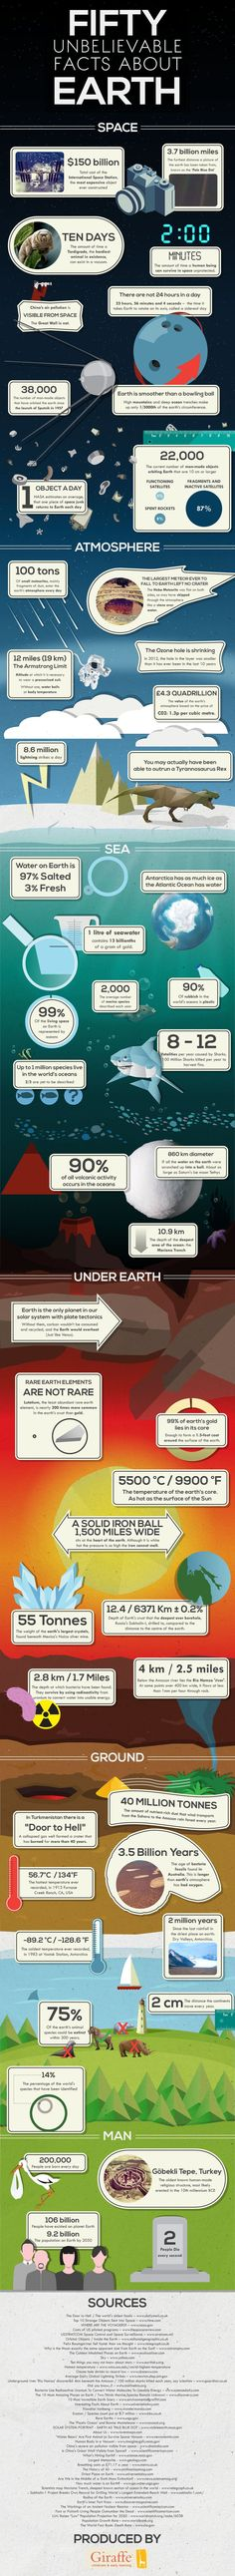 Did you know that 90% of volcanic activity occurs in the oceans? 50 Unbelievable Facts about Earth #infographic Brought to you by Giraffe Childcare Dublin